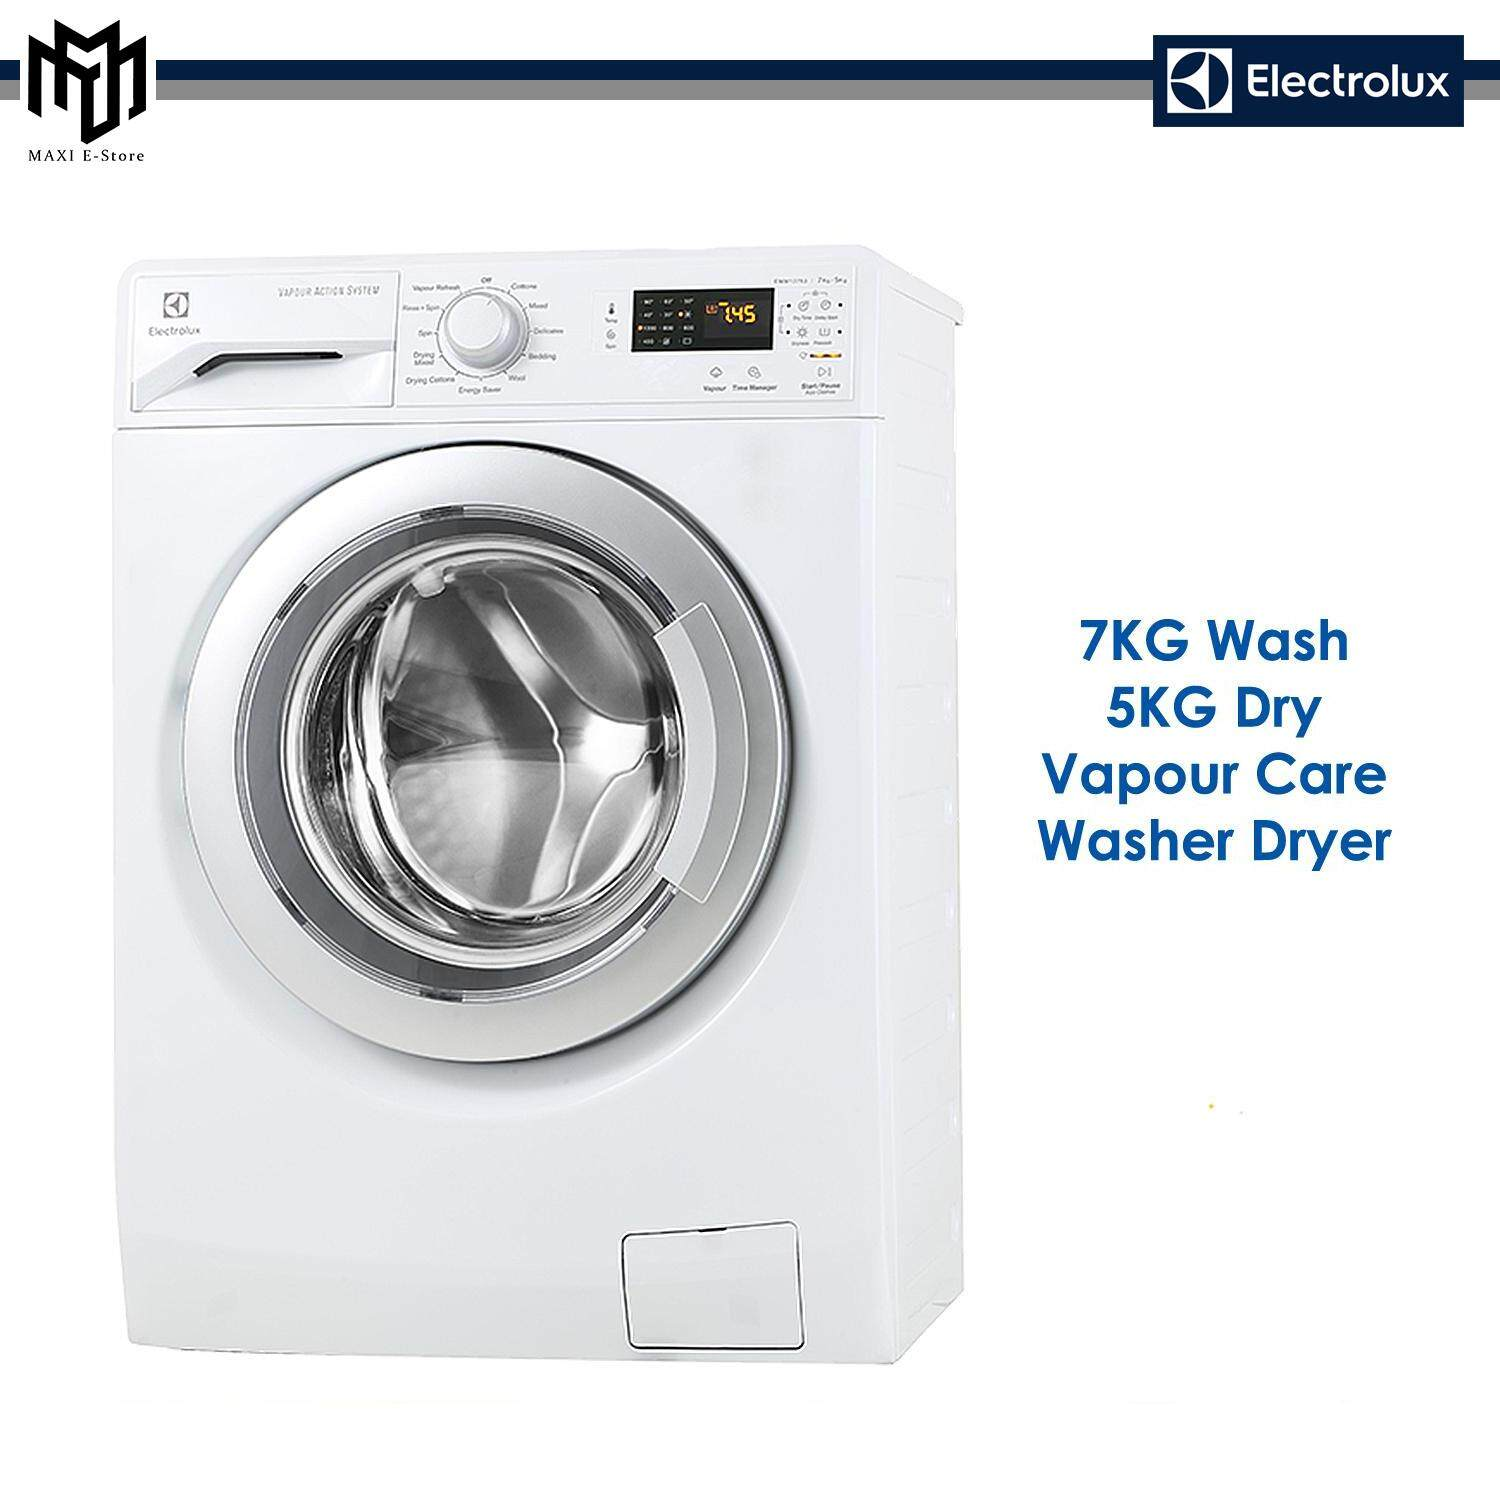 Electrolux 7kg / 5kg Washer Dryer Eww12753 By Maxi E-Store.